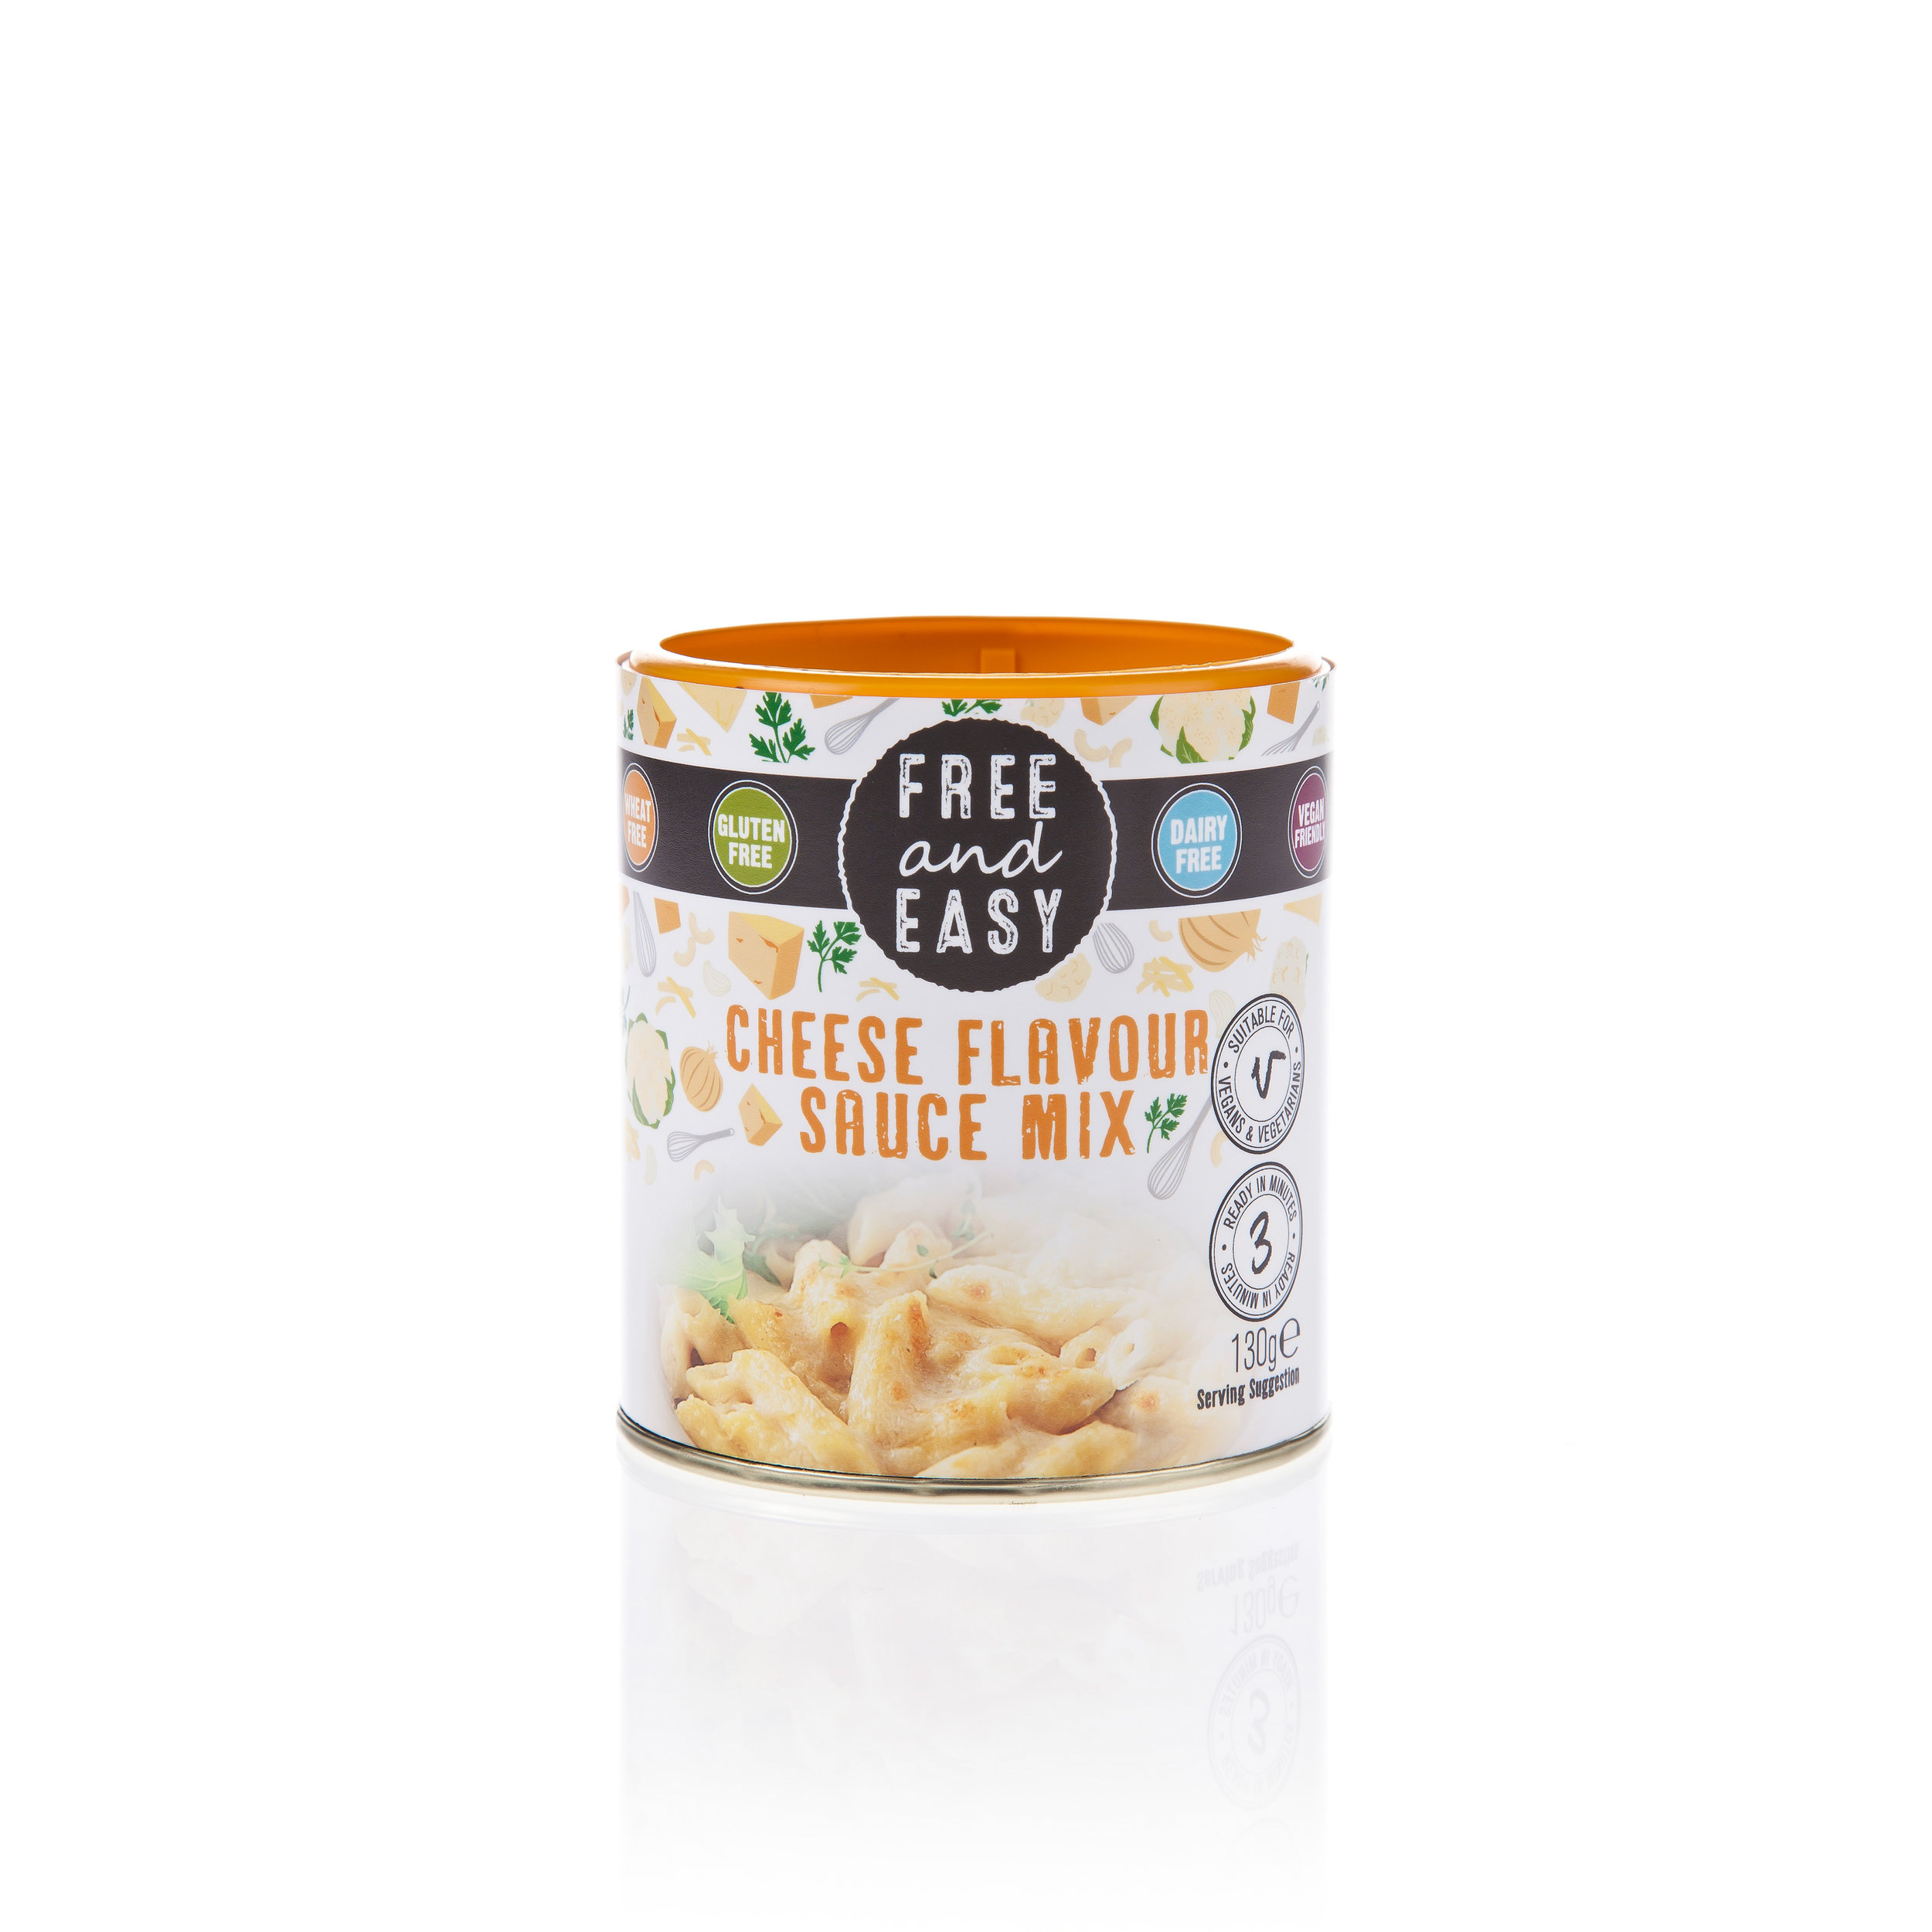 Free and Easy Cheese Sauce - Ready in 3 minutes, Low fat, Celery, nut, wheat, gluten, dairy and mustard free, Preservative free, Suitable for vegans and vegetarians.130g